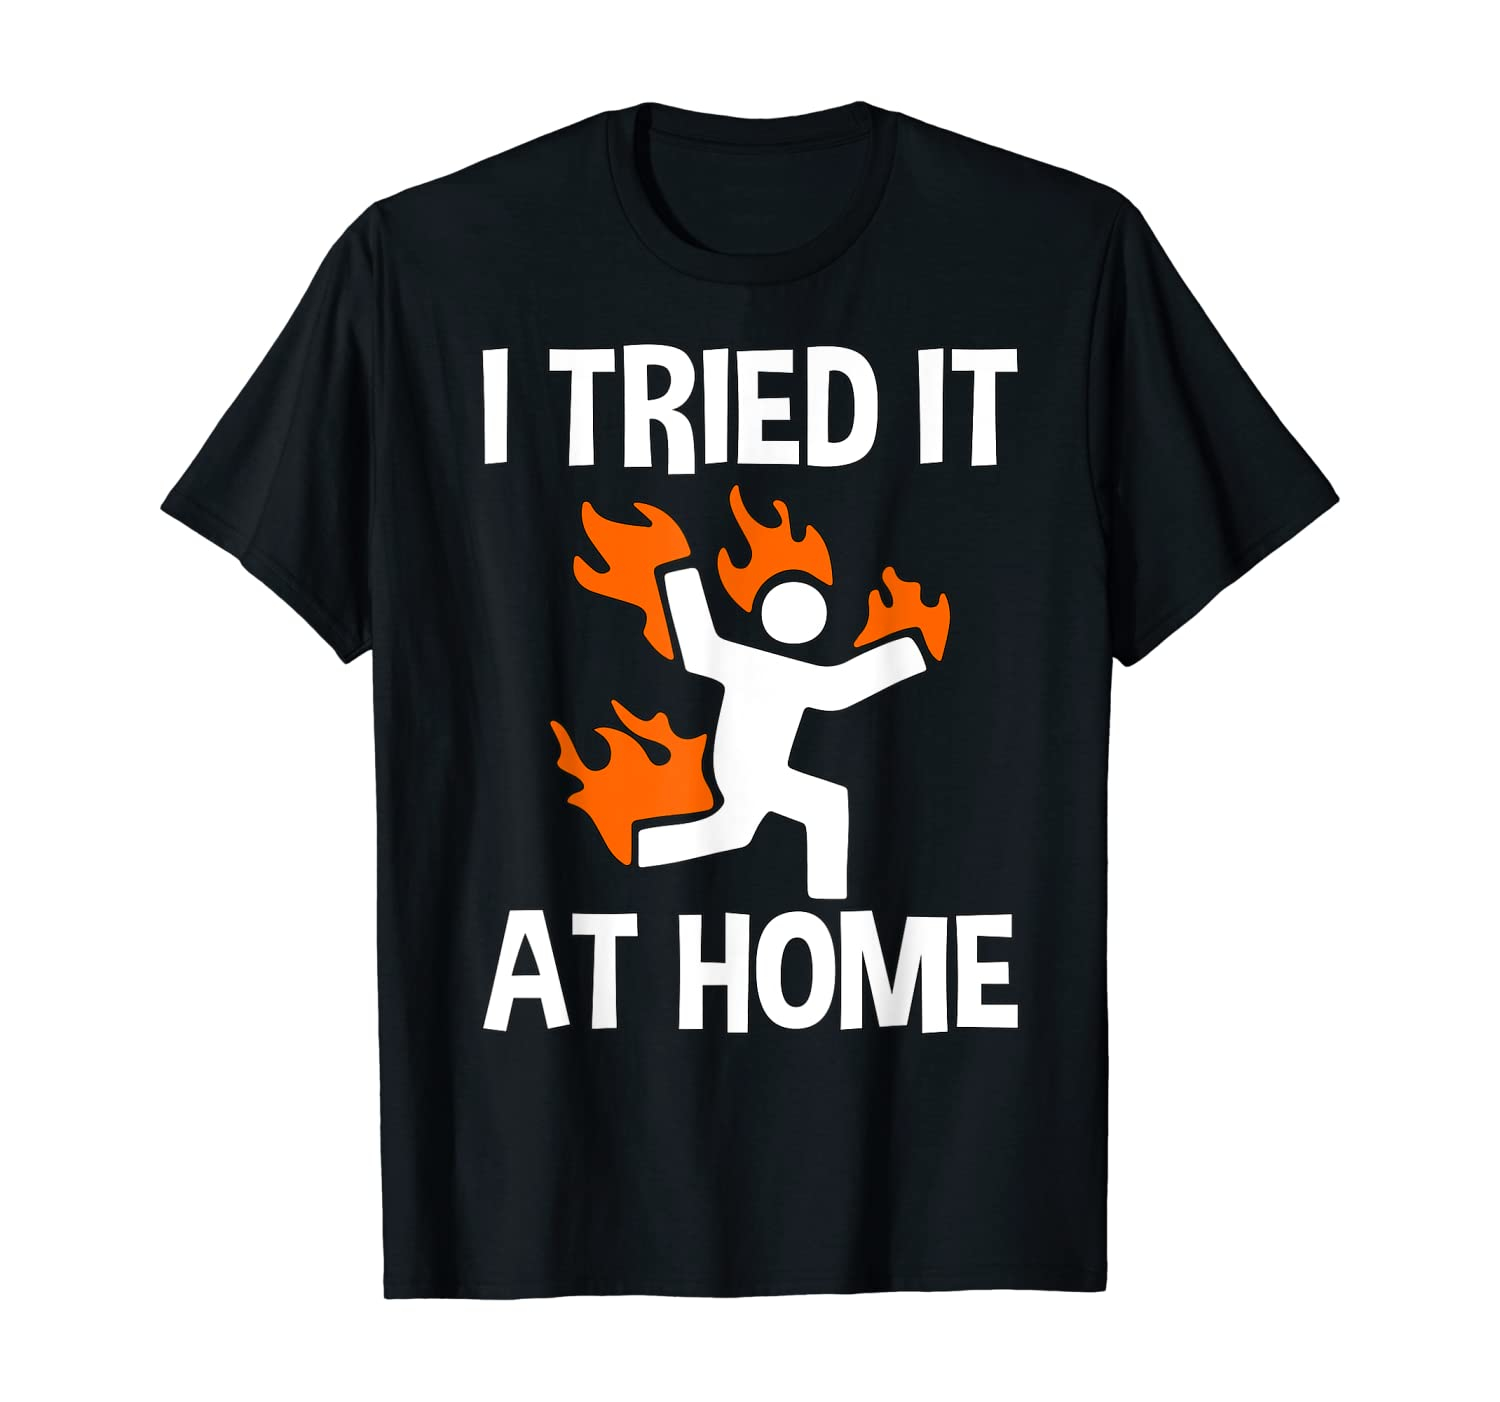 I Tried It & Caught On Fire At Home Science Humor T-Shirt